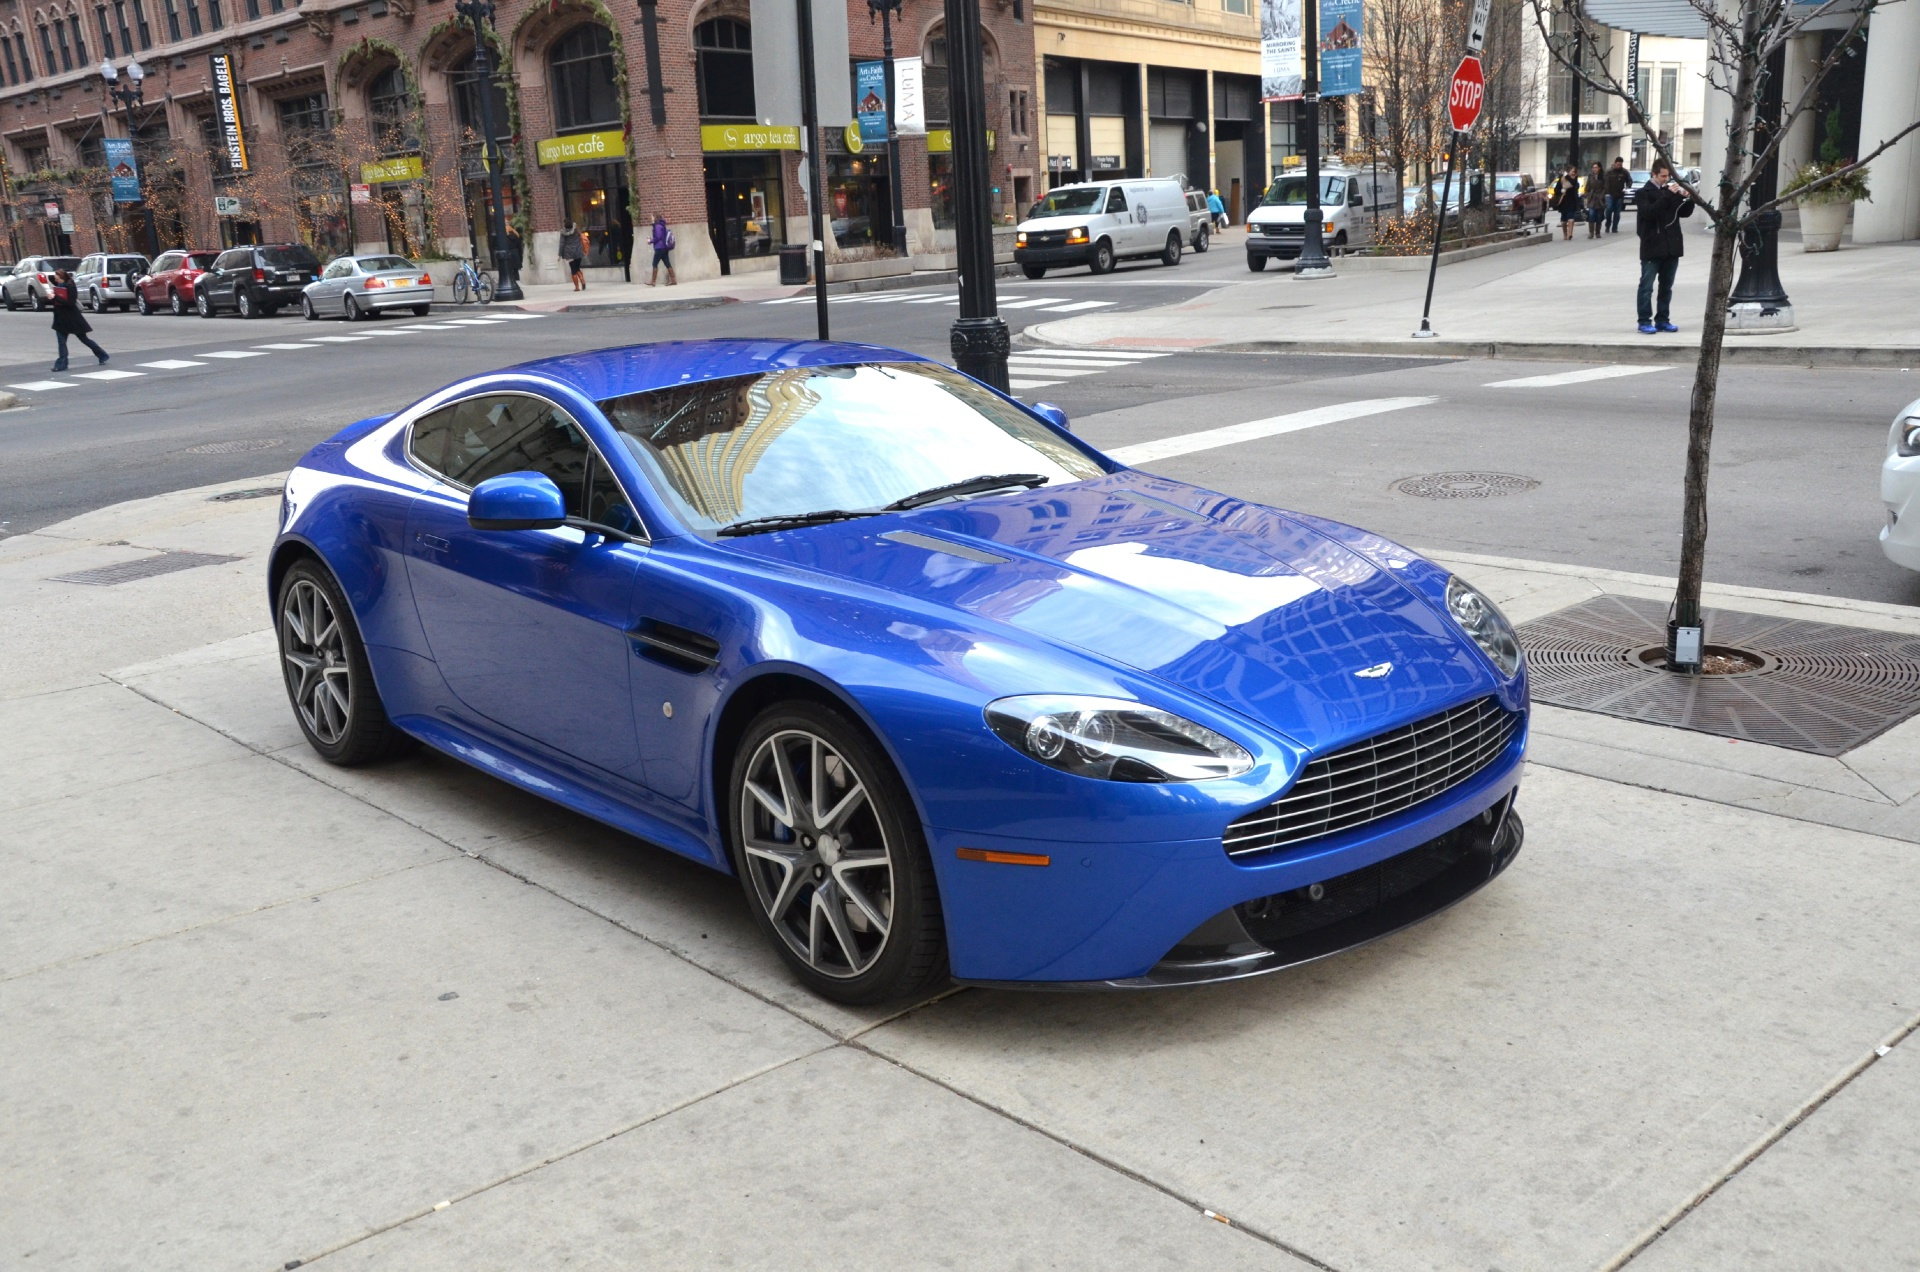 2011 aston martin v8 vantage s stock gc984a for sale near chicago il il aston martin dealer. Black Bedroom Furniture Sets. Home Design Ideas